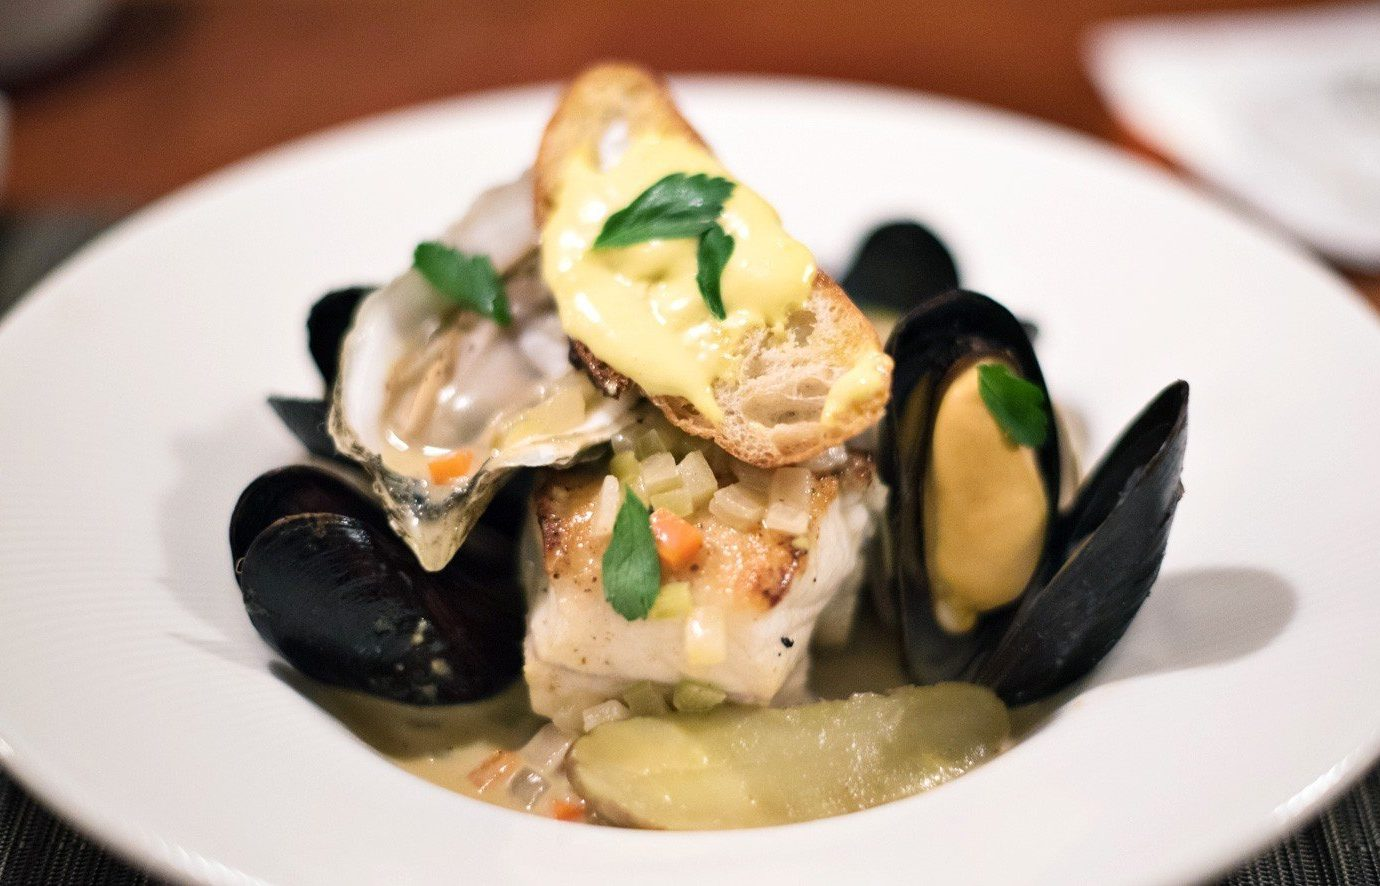 Beach Trip Ideas plate food dish indoor cuisine mussel white Seafood meal produce restaurant clams oysters mussels and scallops invertebrate meat arranged piece de resistance